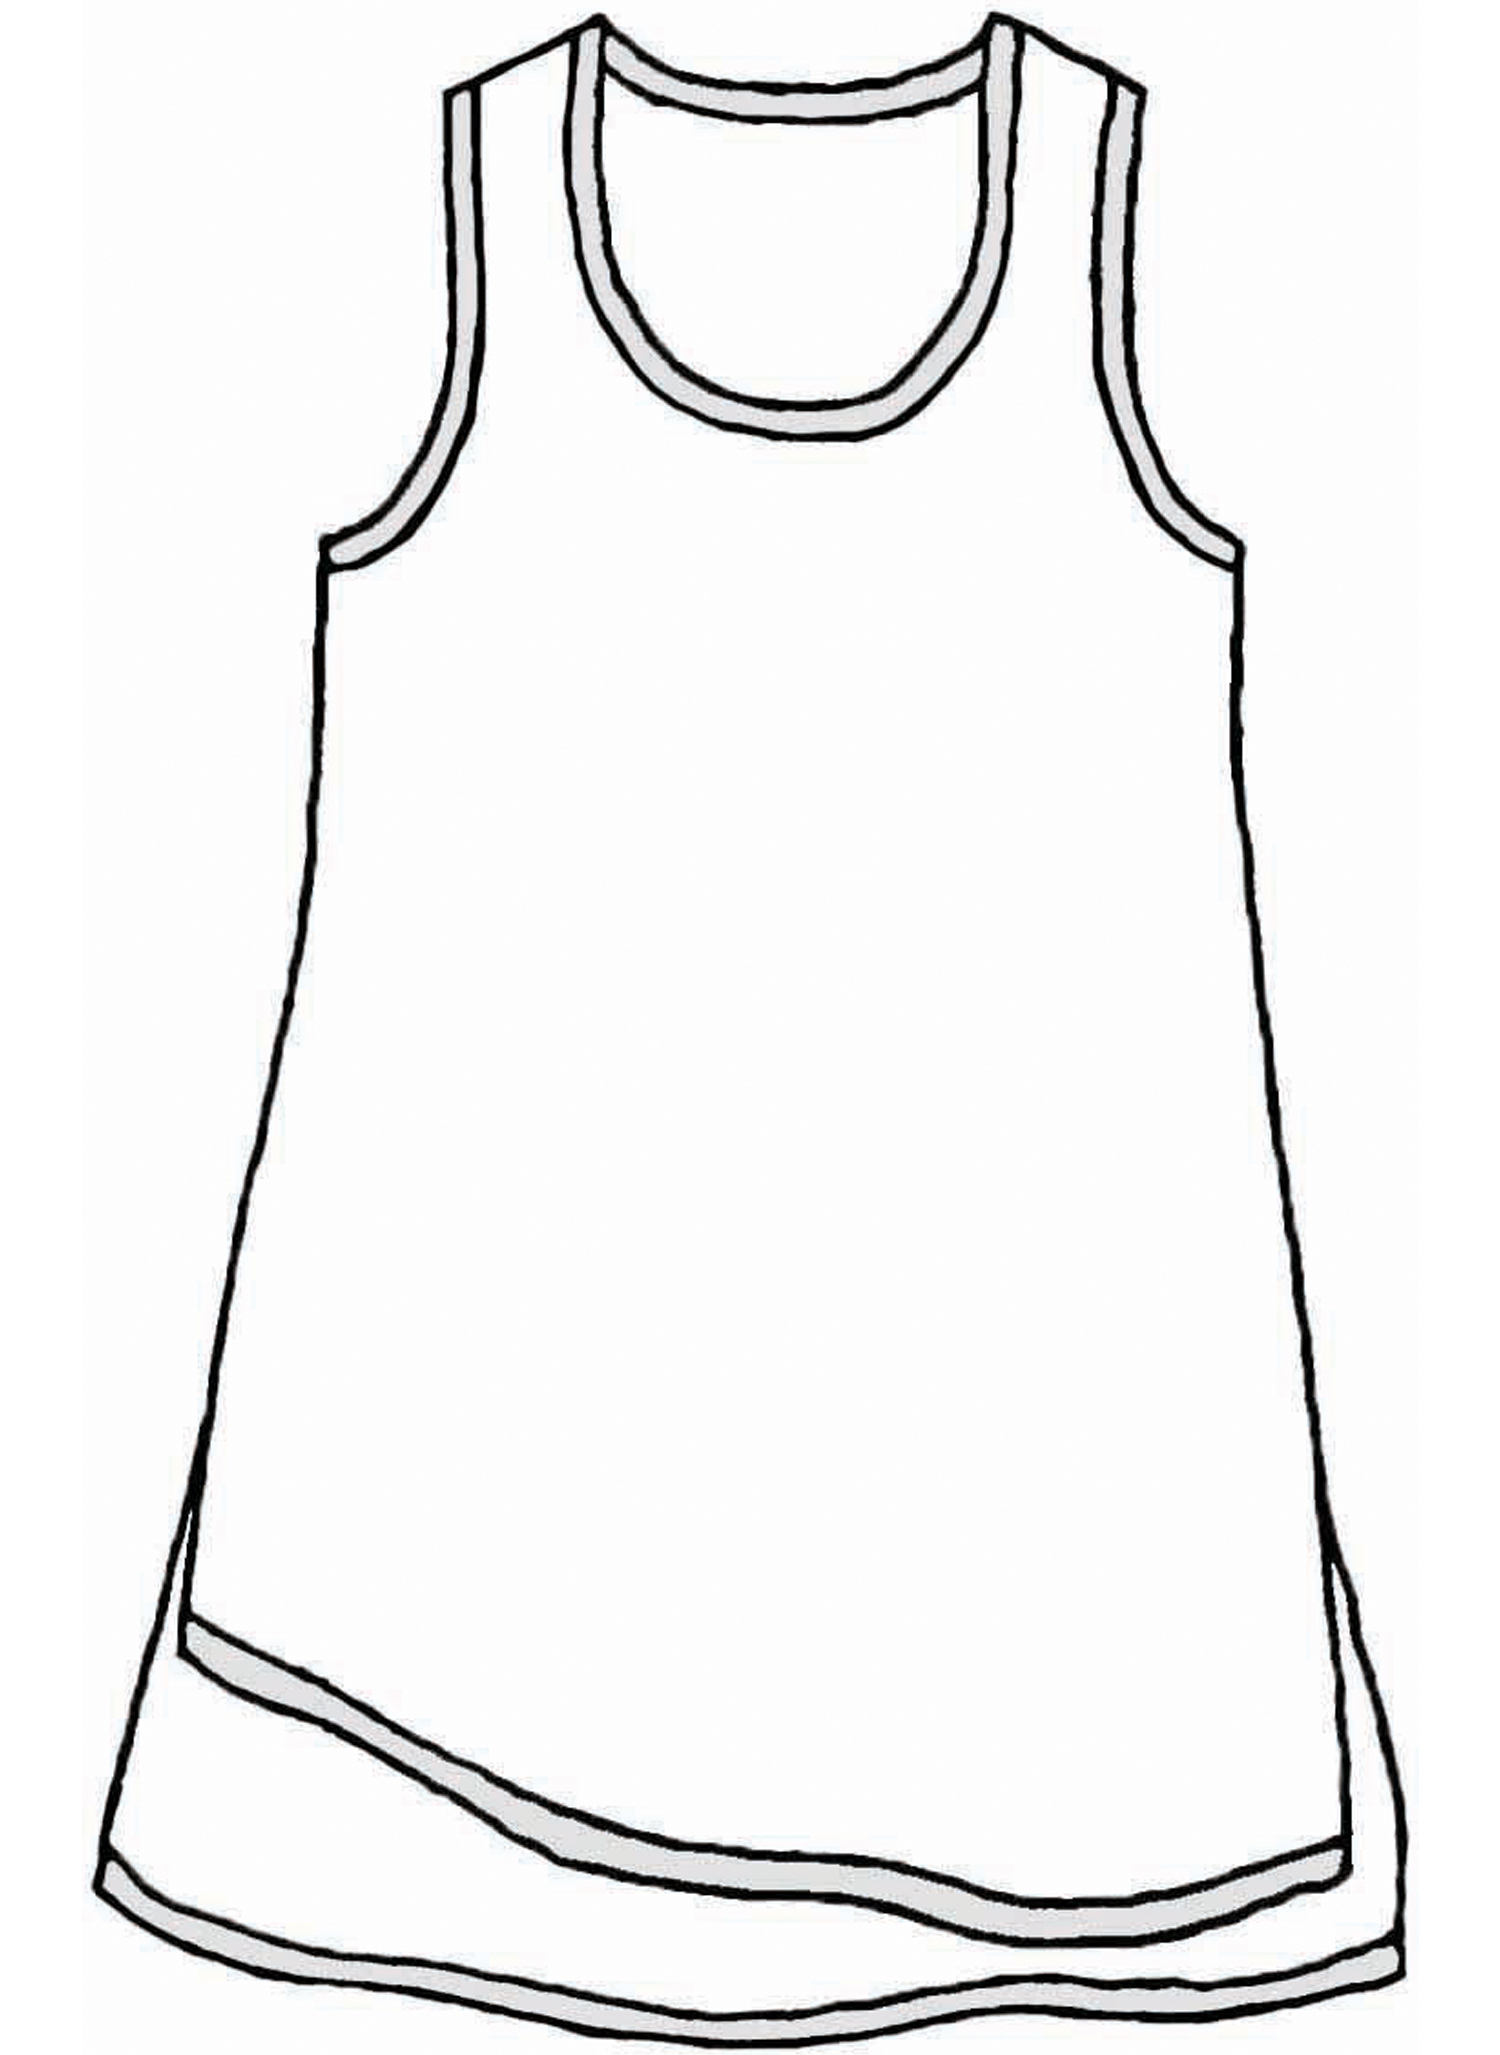 West Side Tunic sketch image